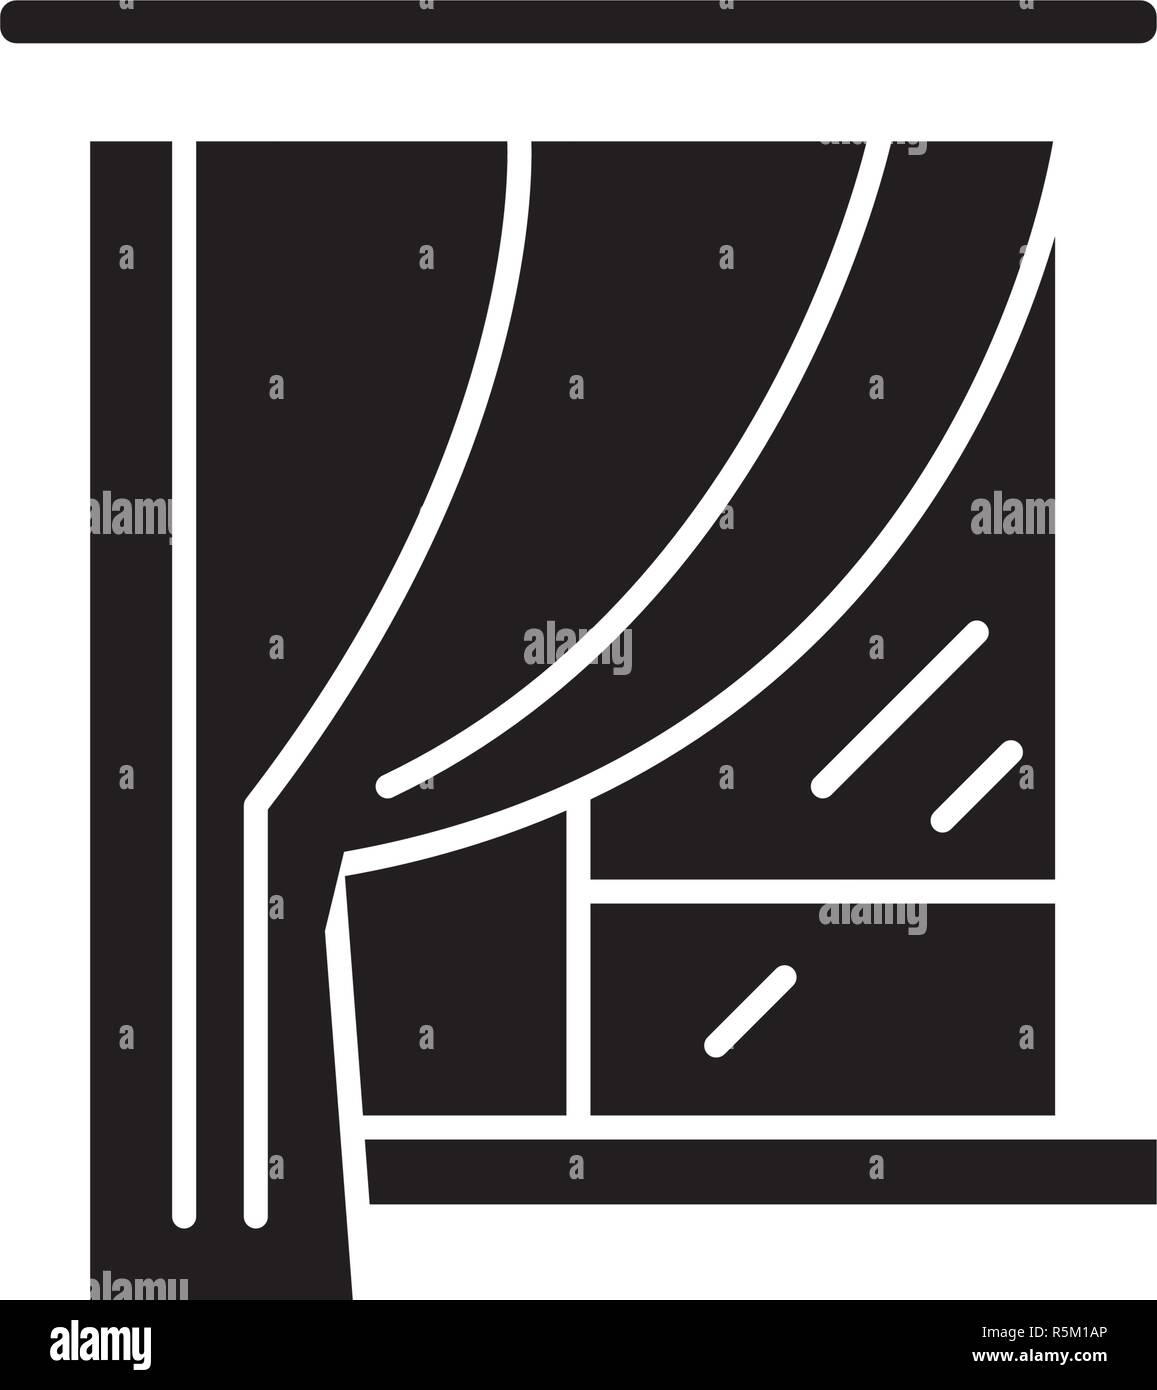 Curtains black icon, vector sign on isolated background. Curtains concept symbol, illustration  - Stock Vector